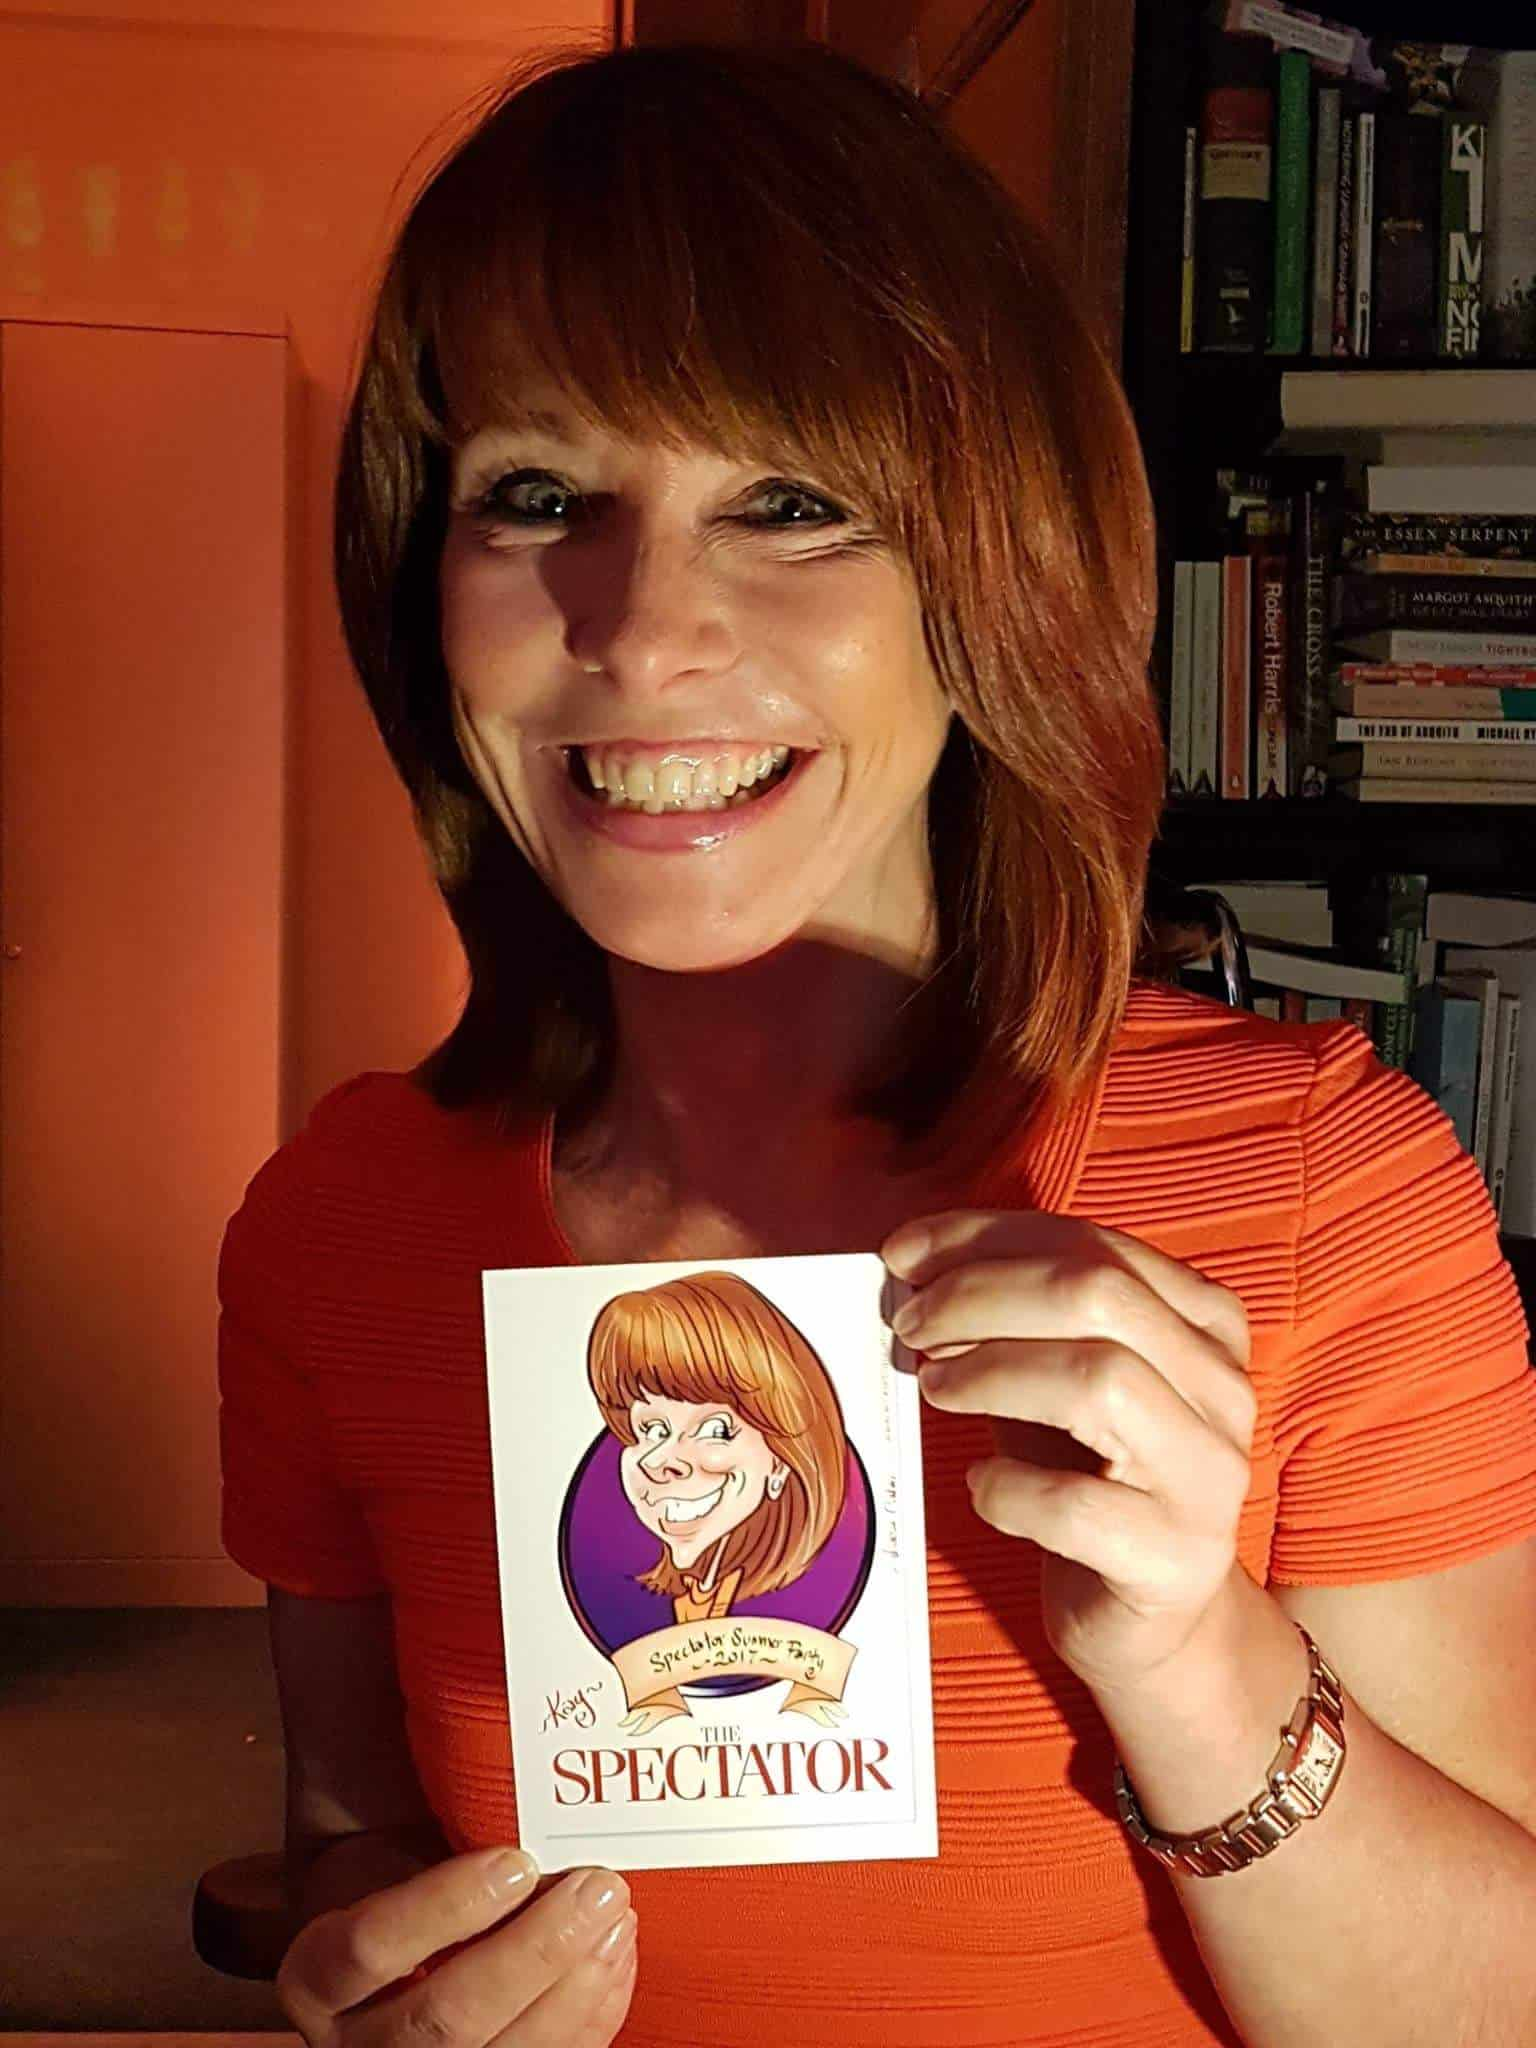 Kay Burley live digital caricature at Spectator Summer Party 2017 by Luisa Calvo Wicked Caricatures